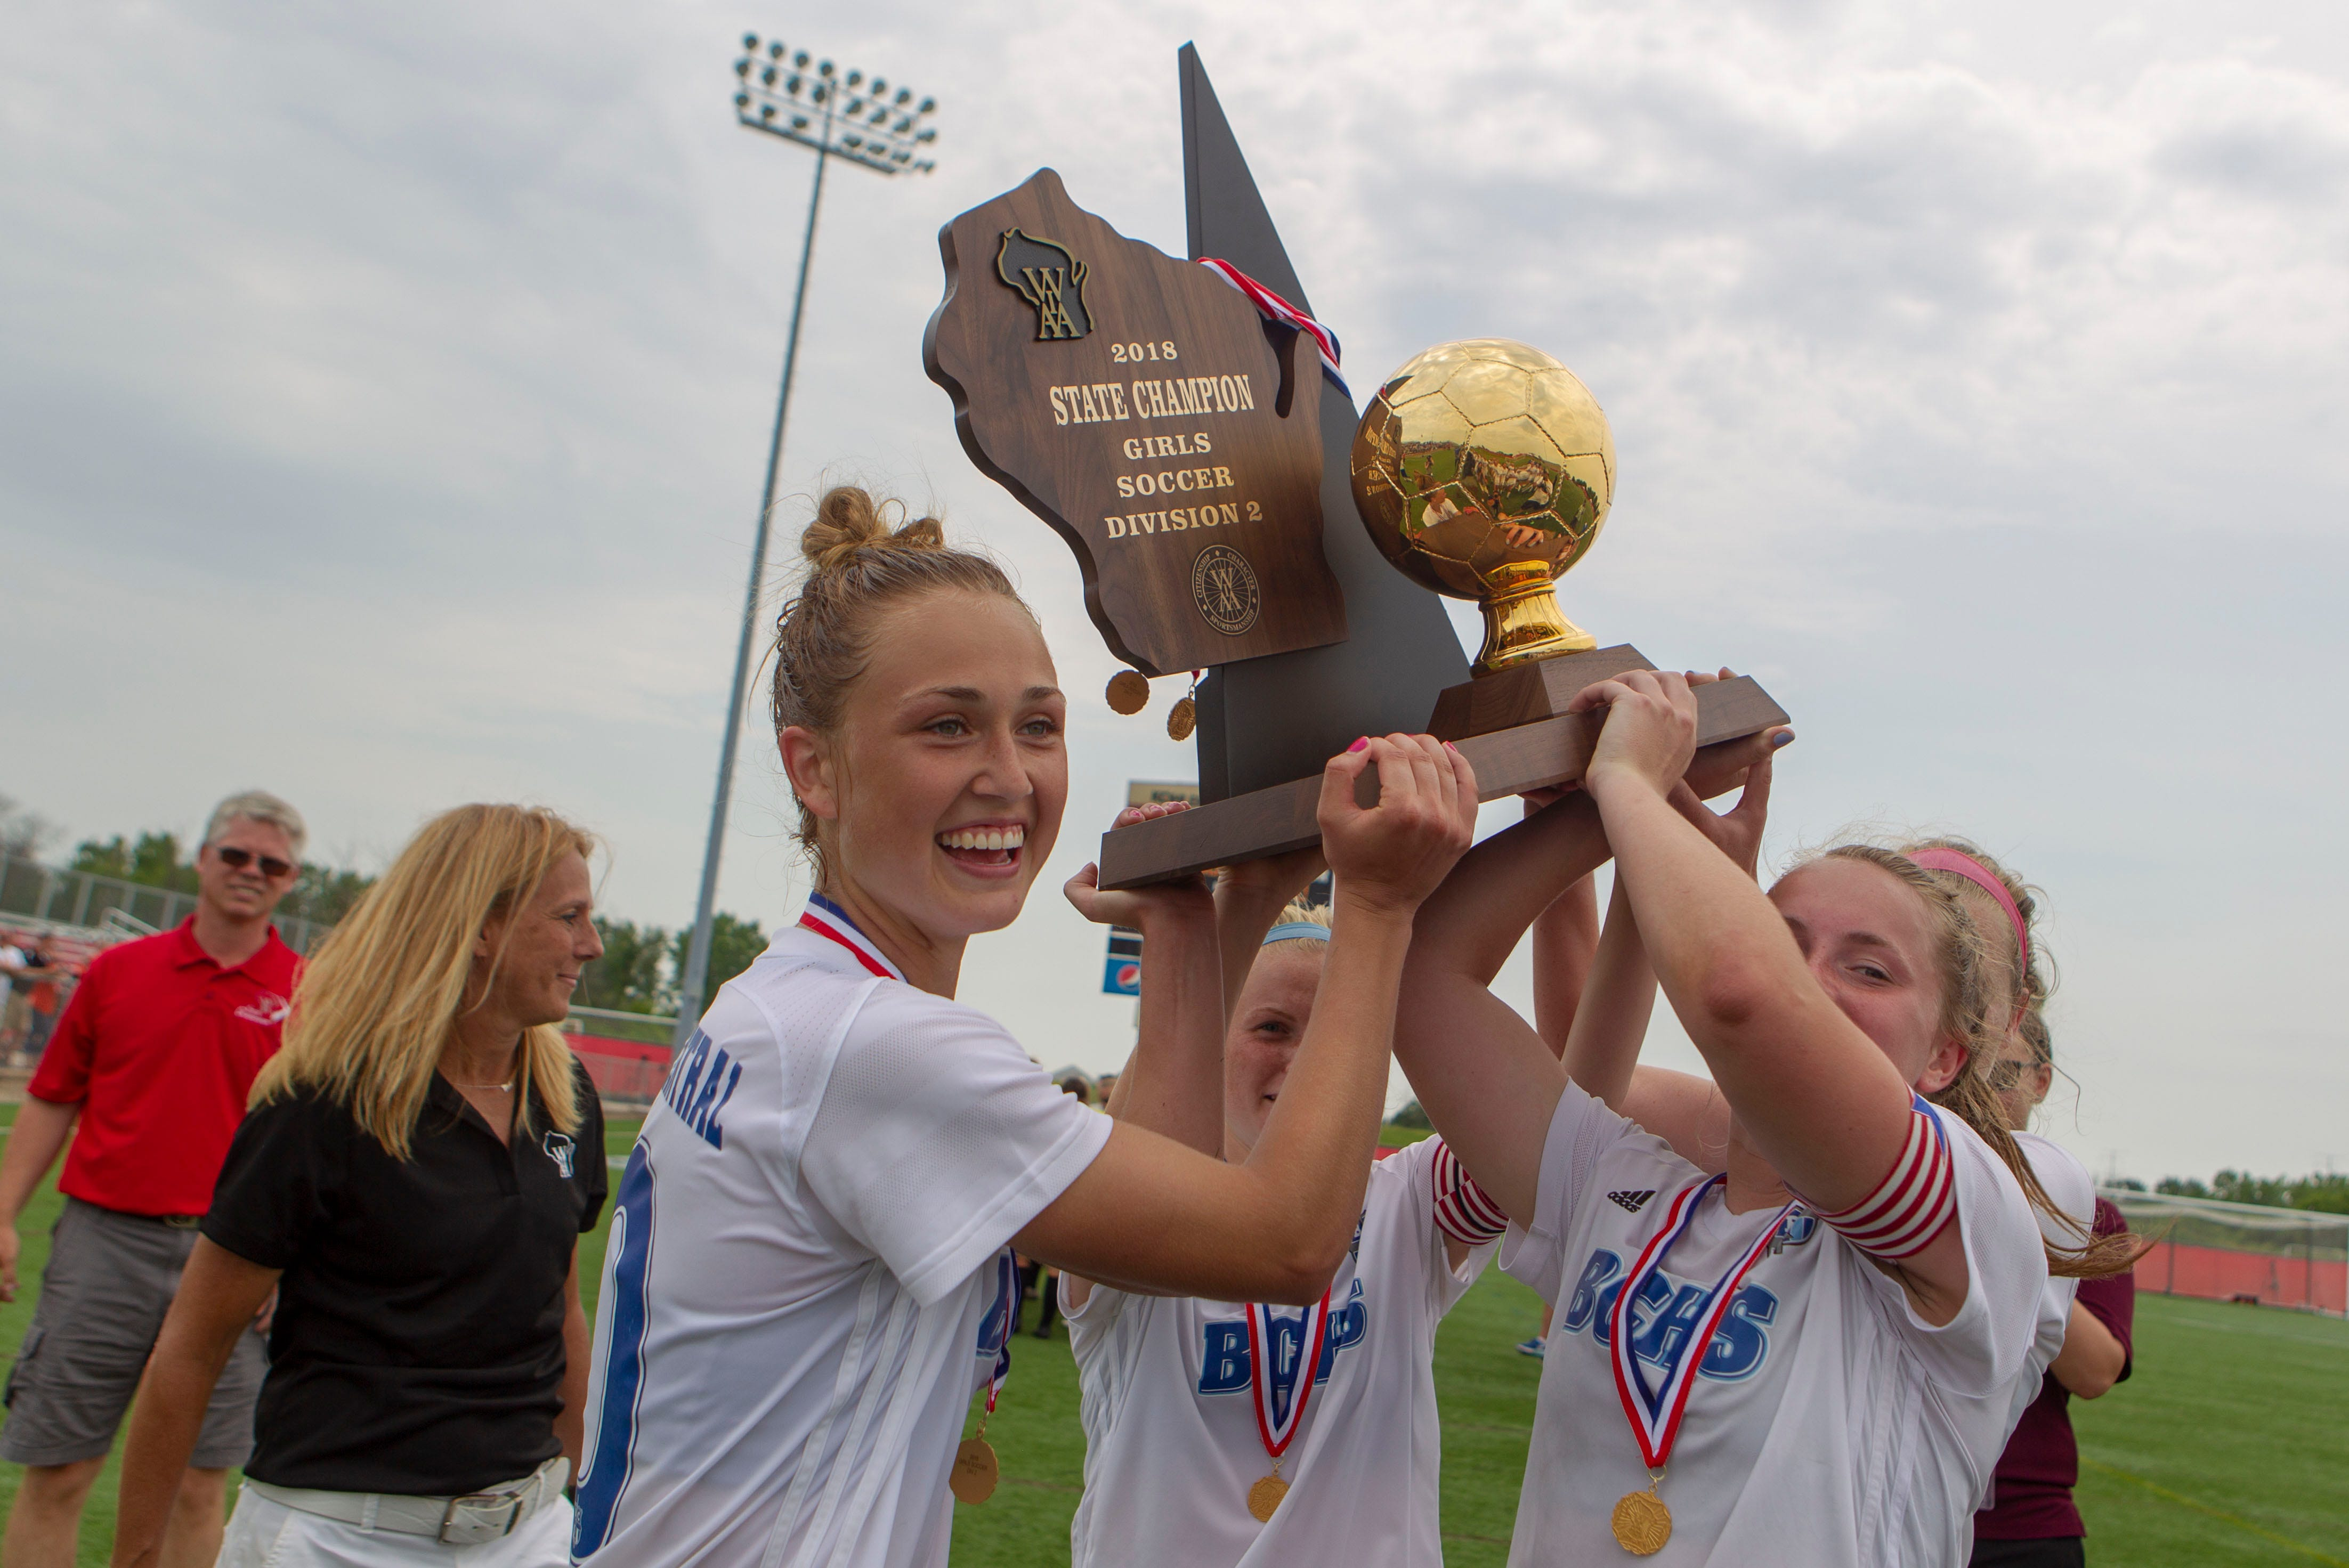 http://www jsonline com/picture-gallery/sports/high-schools